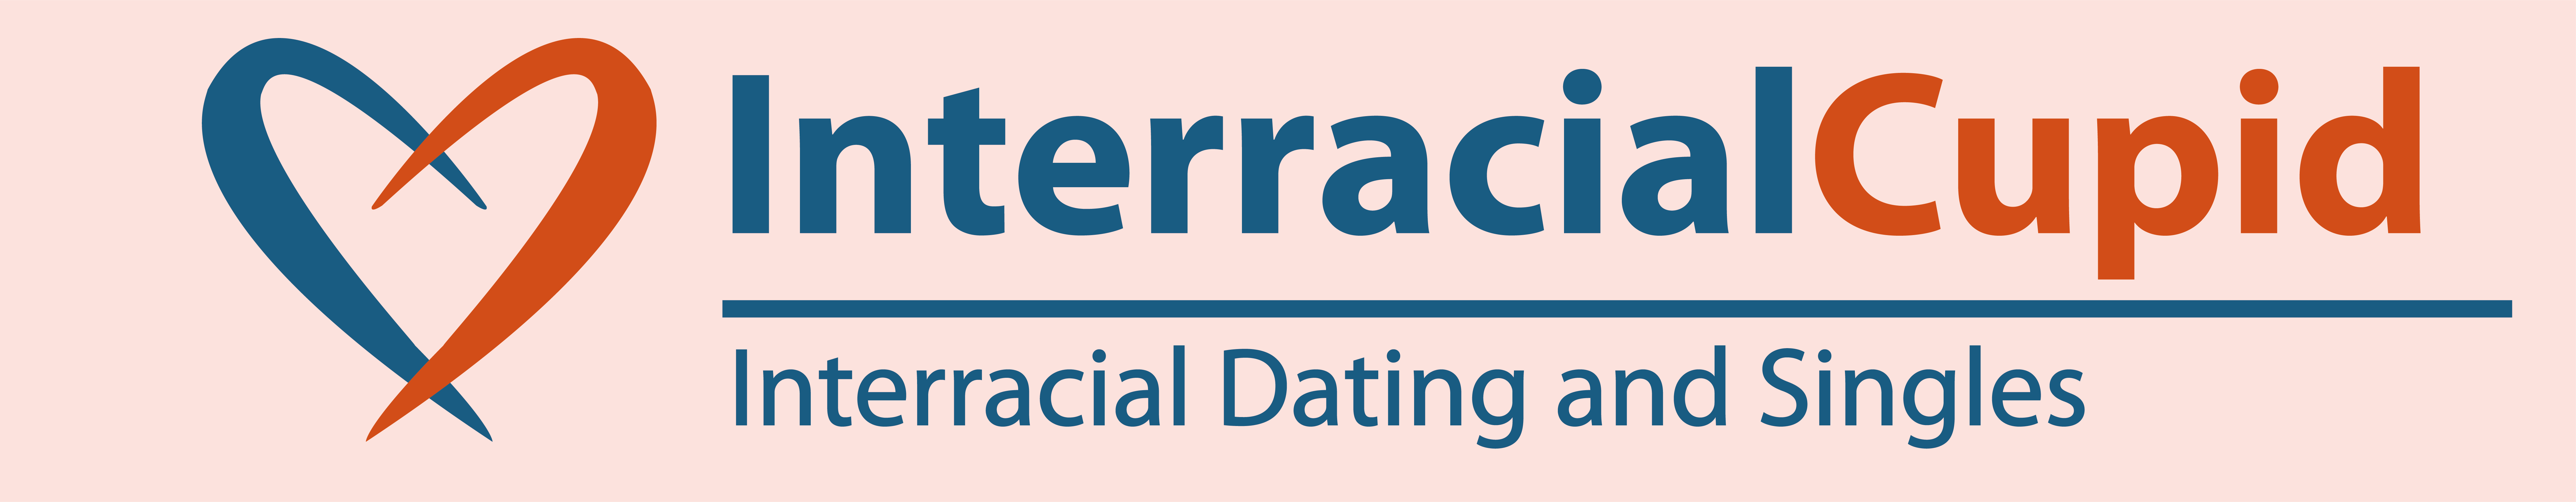 Interracial Cupid Logo